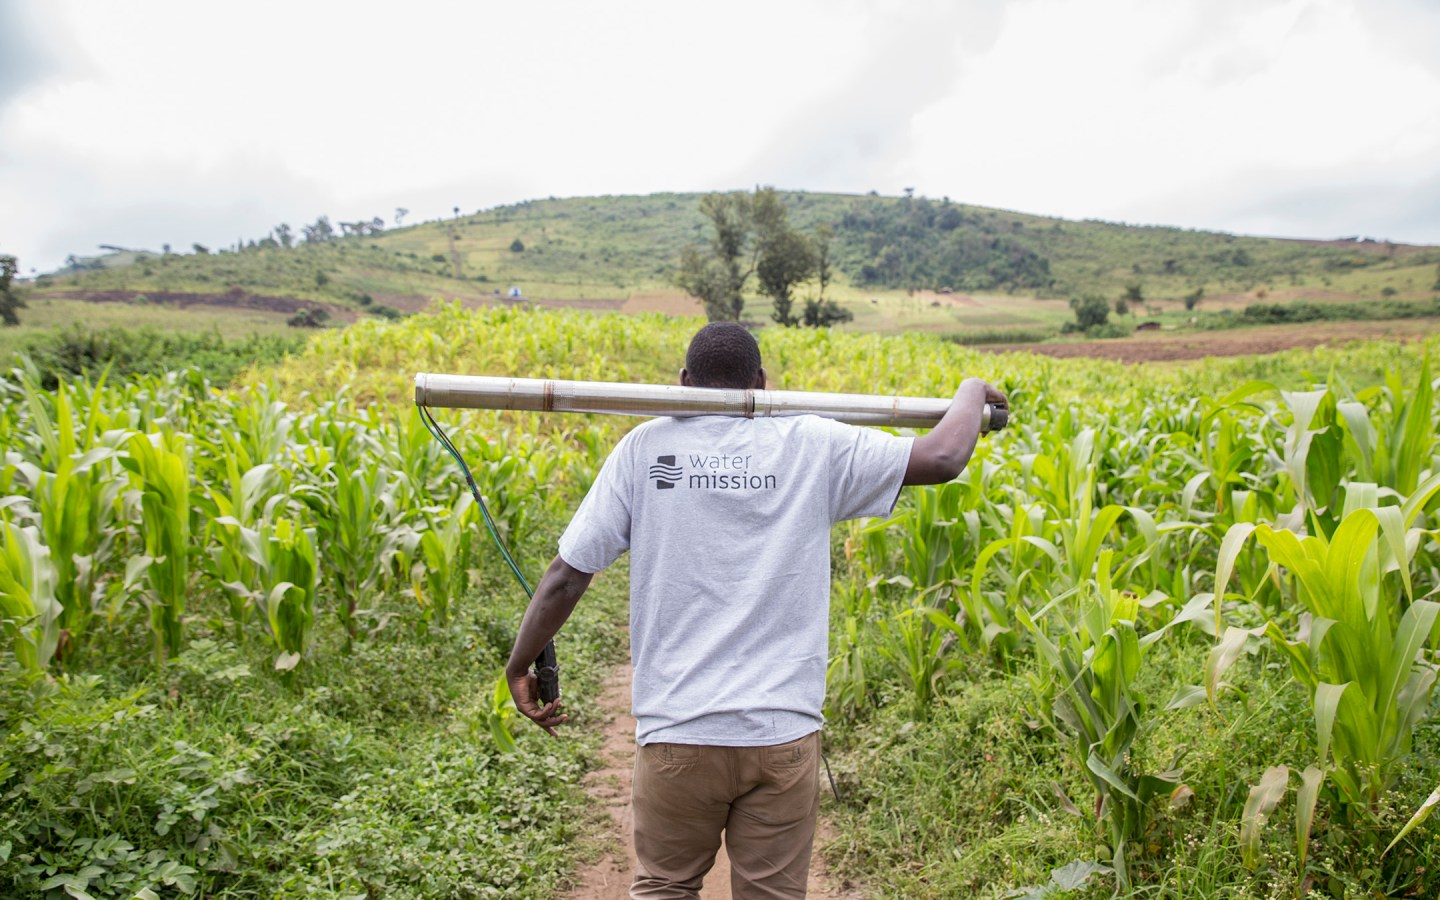 Water Mission technician carries a submersible water pump to a site in Enariboo, Kenya.